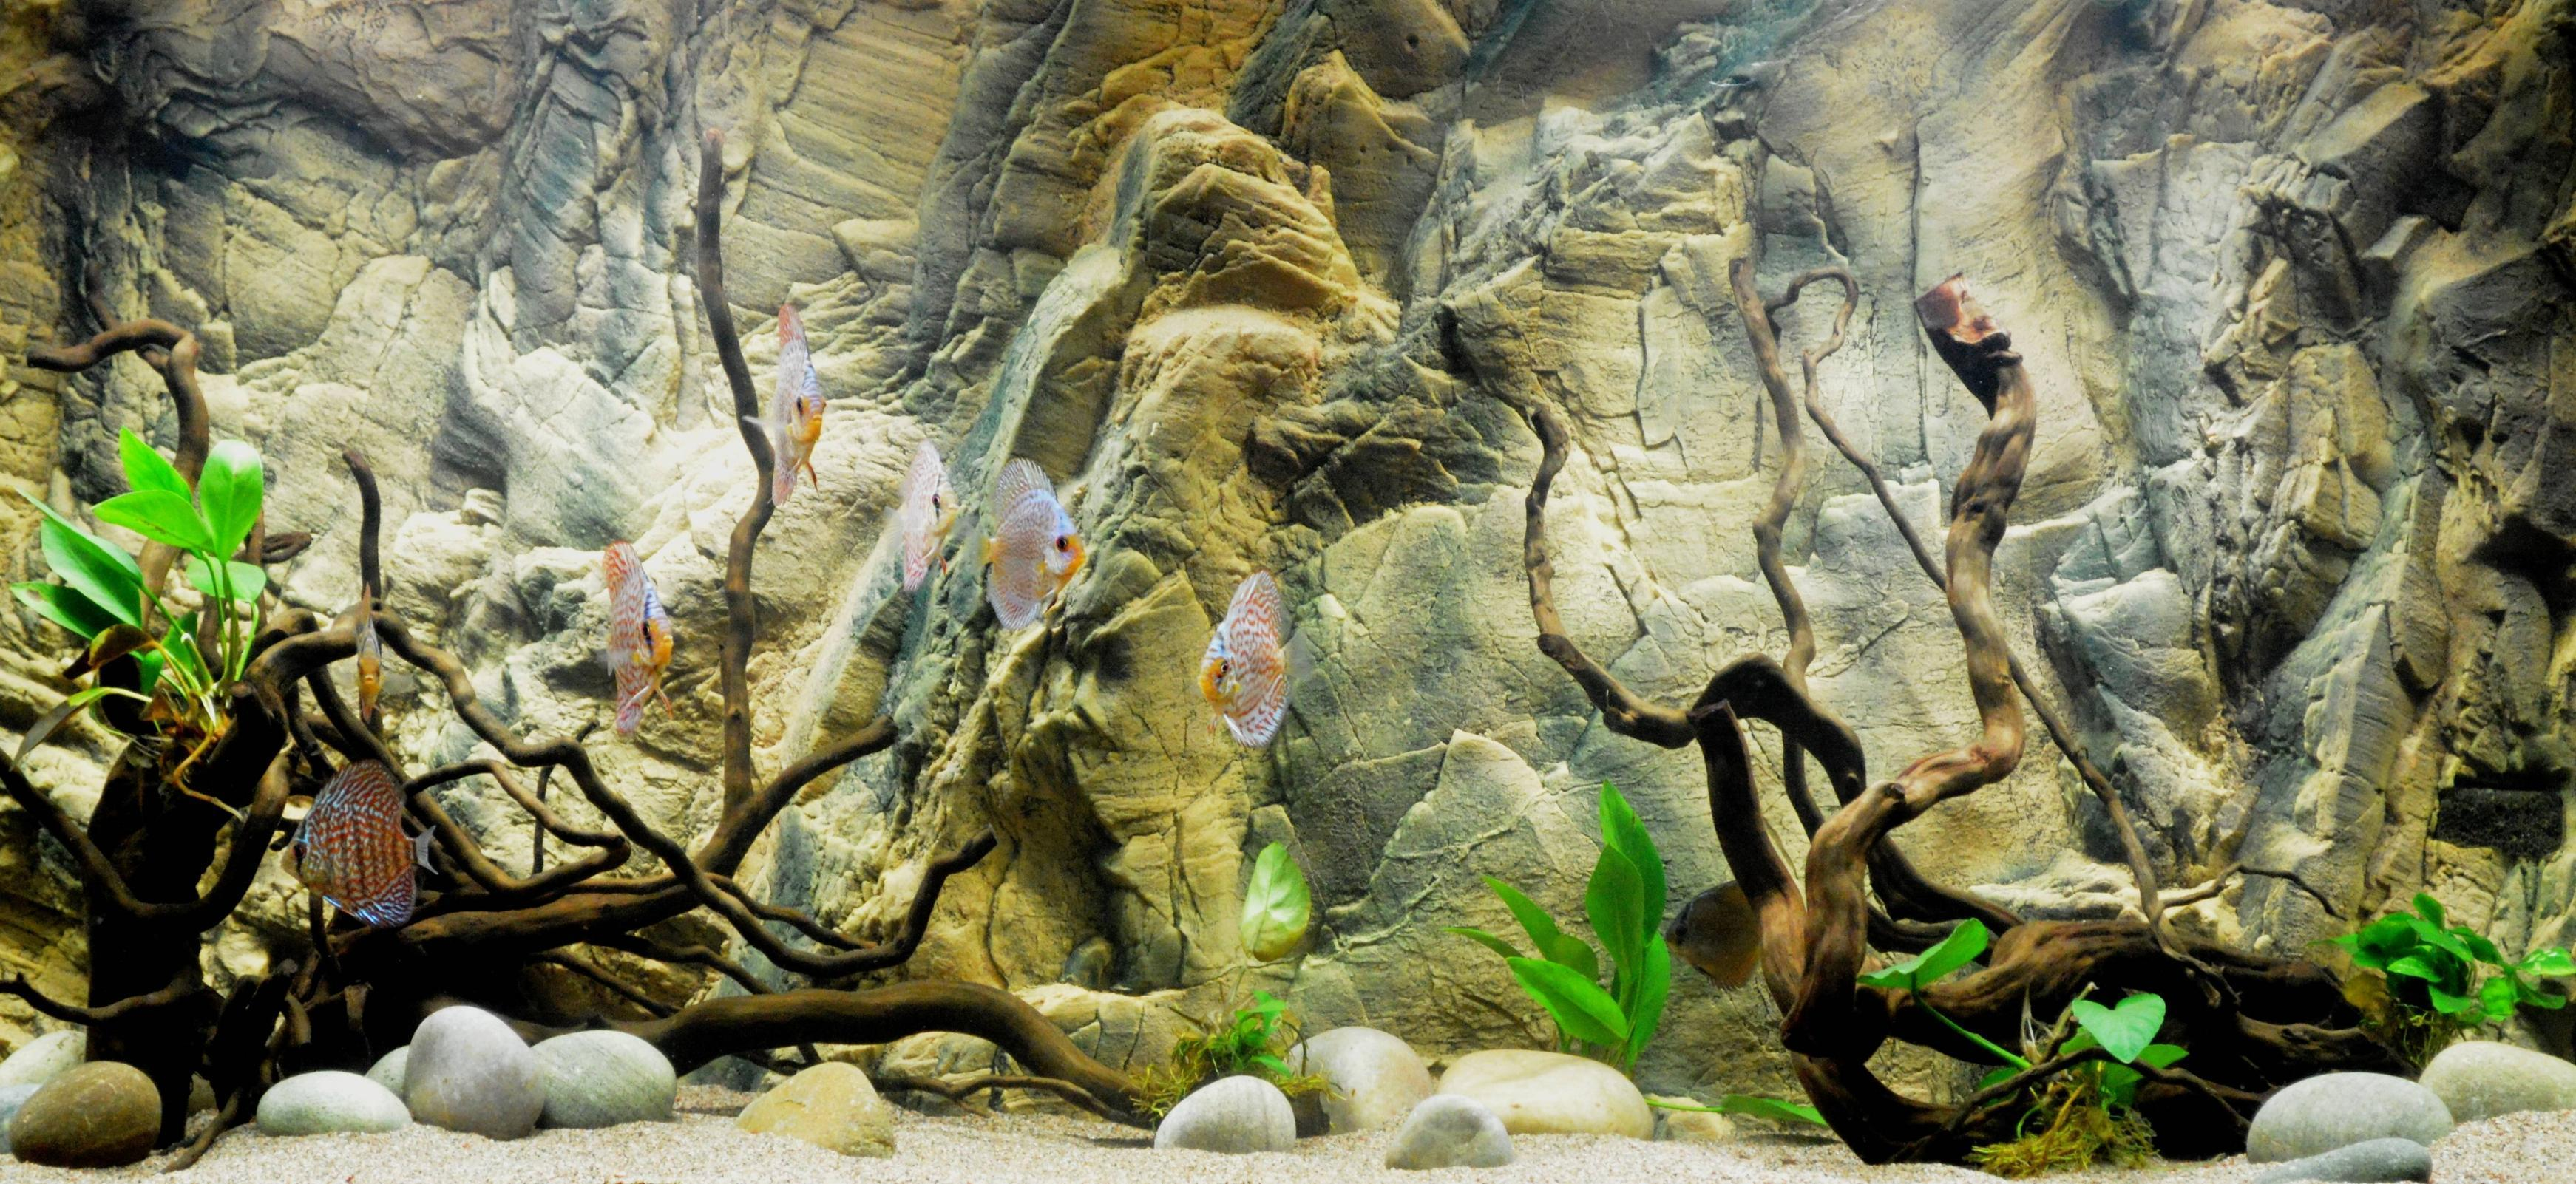 3d Fish Tank Wallpaper Aquarium Backgrounds Pictures Wallpaper Cave